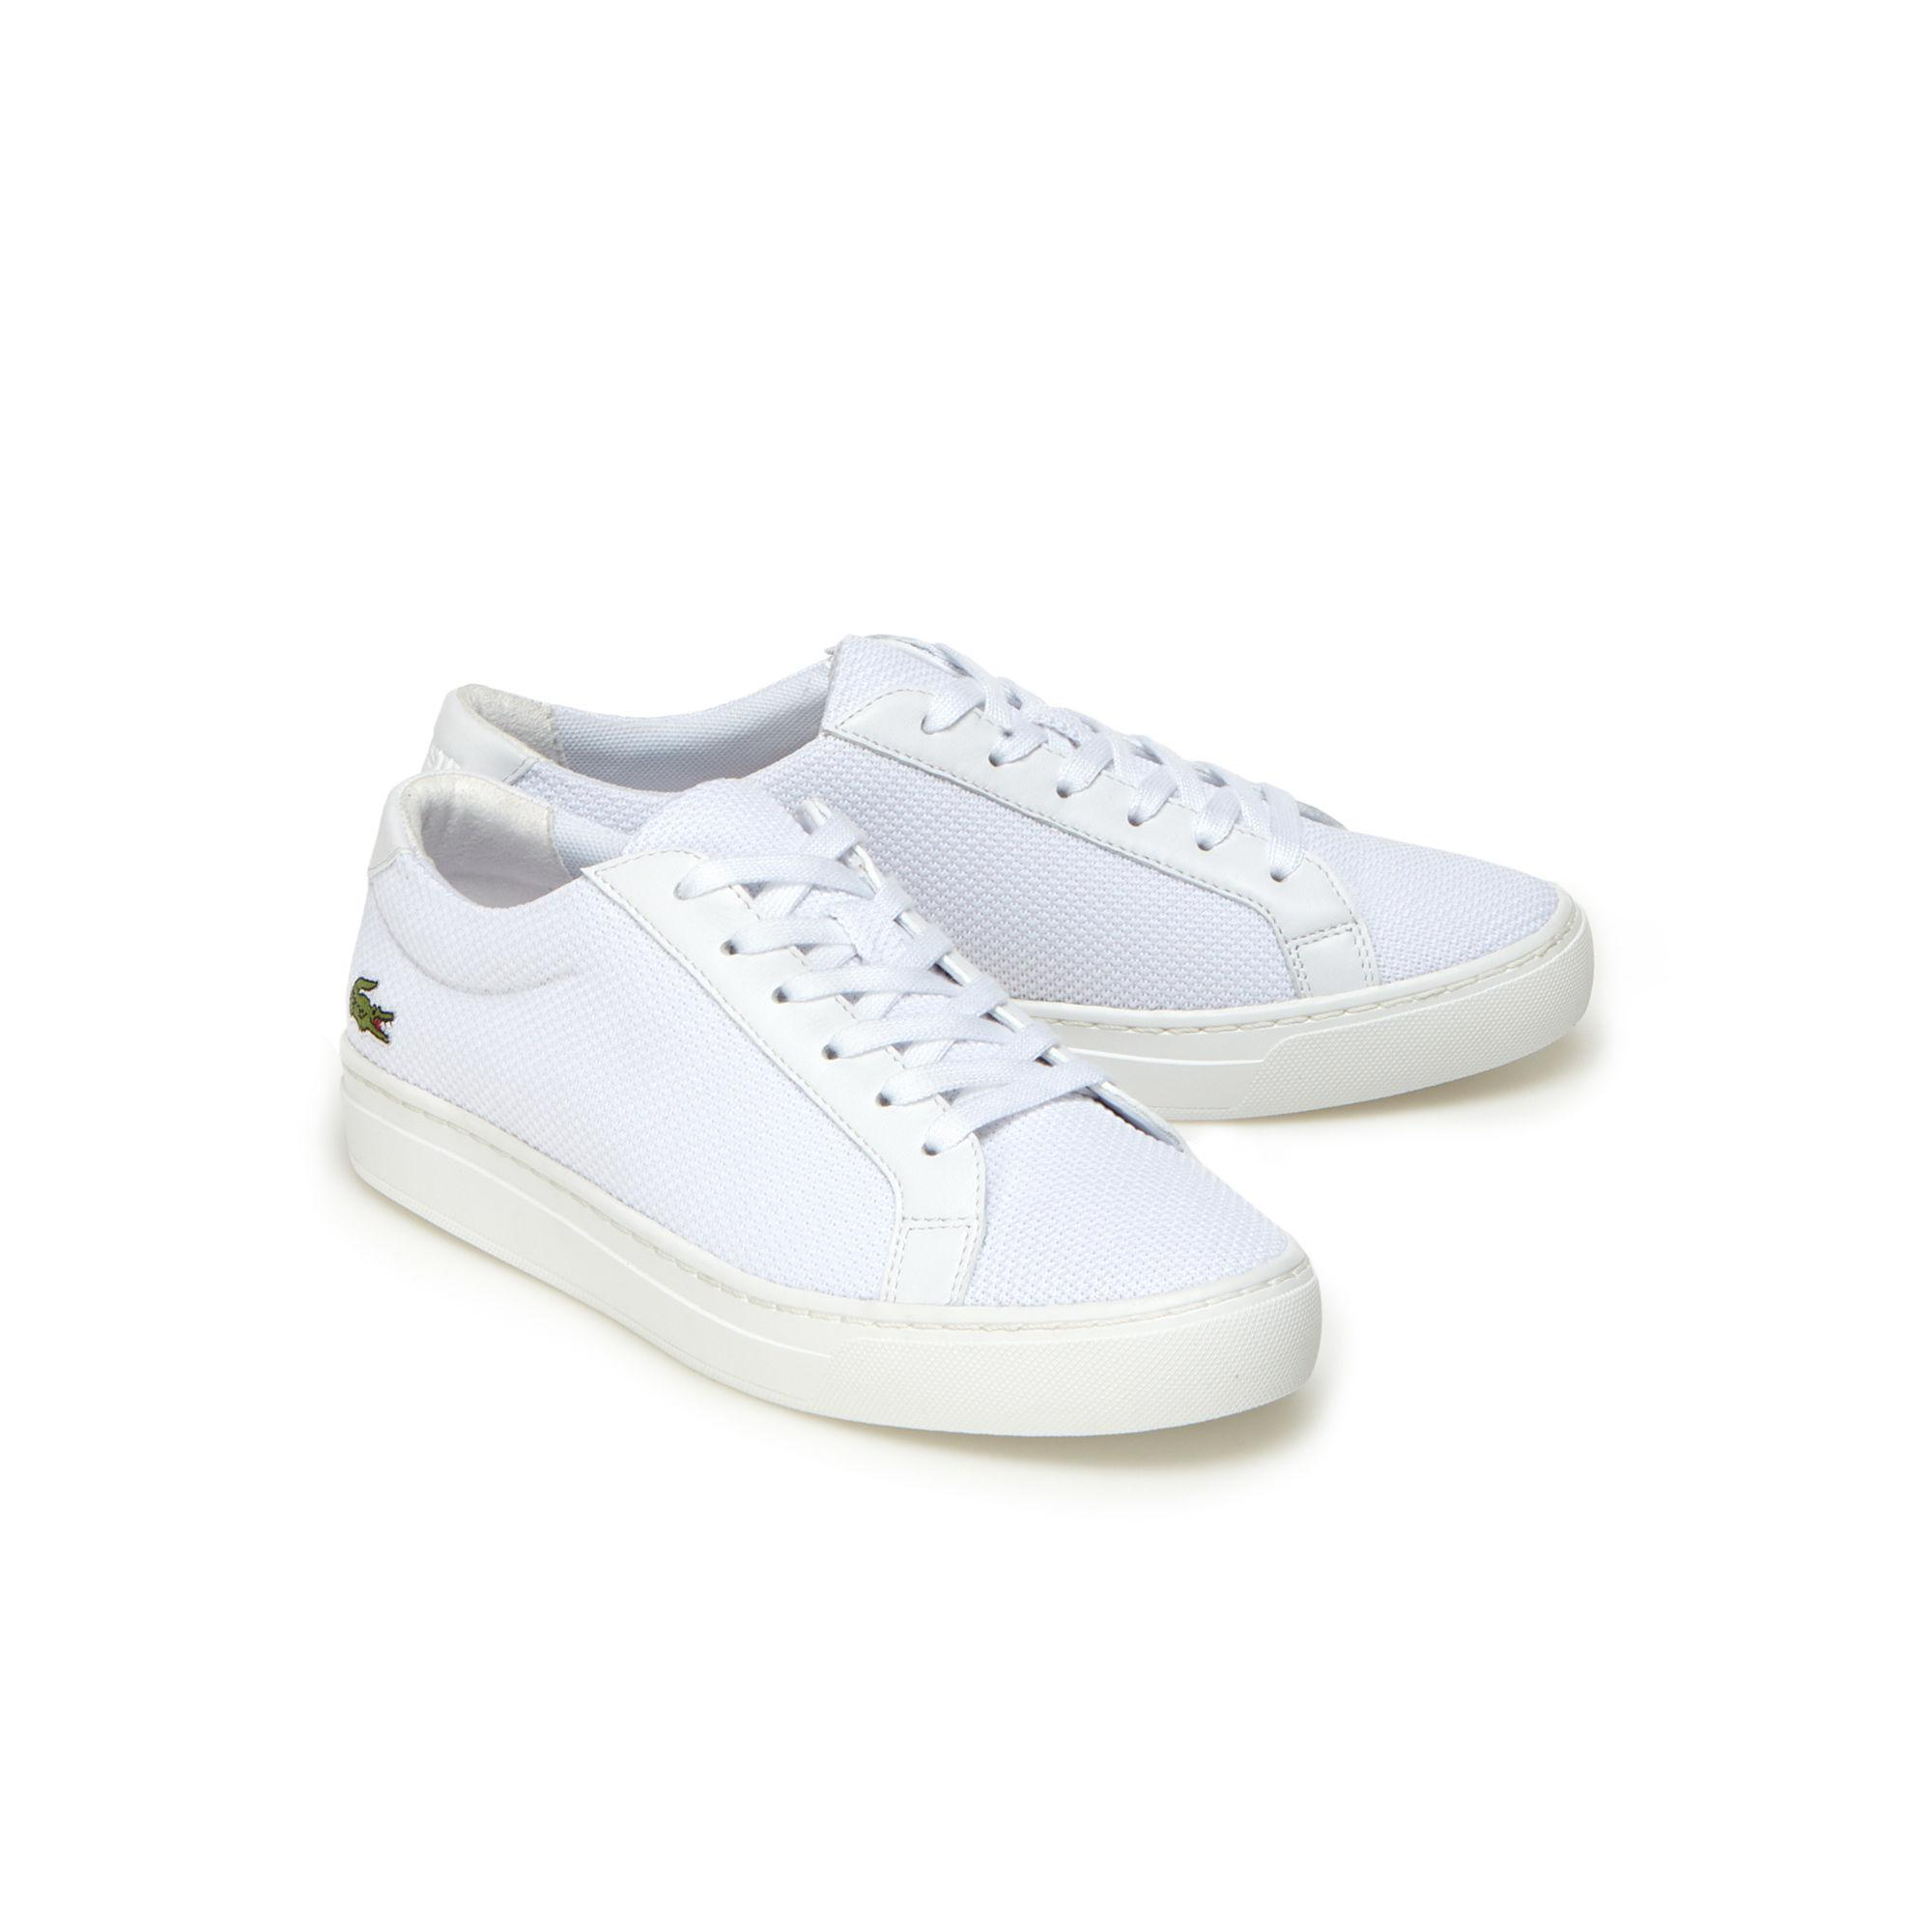 062db2141 Lyst - Lacoste Children s L.12.12 Bl Textile And Leather Trainers in ...